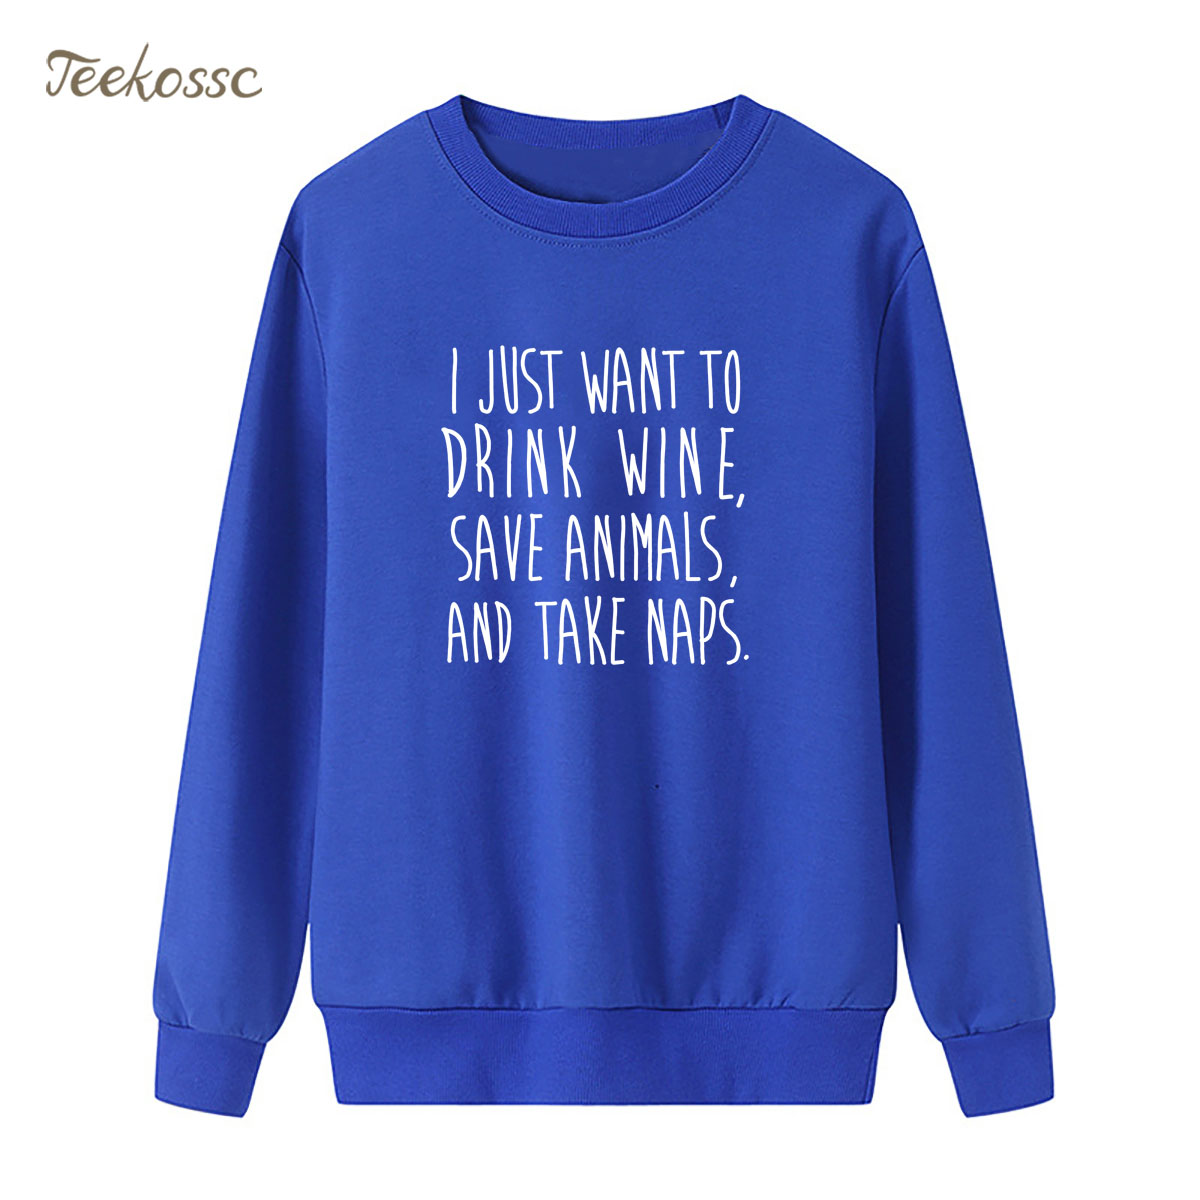 I Just Want to Drink Wine, Save Animals, Take Naps Sweatshirt Women Hoodie Winter Autumn Lasdies Pullover Fleece Streetwear XXL